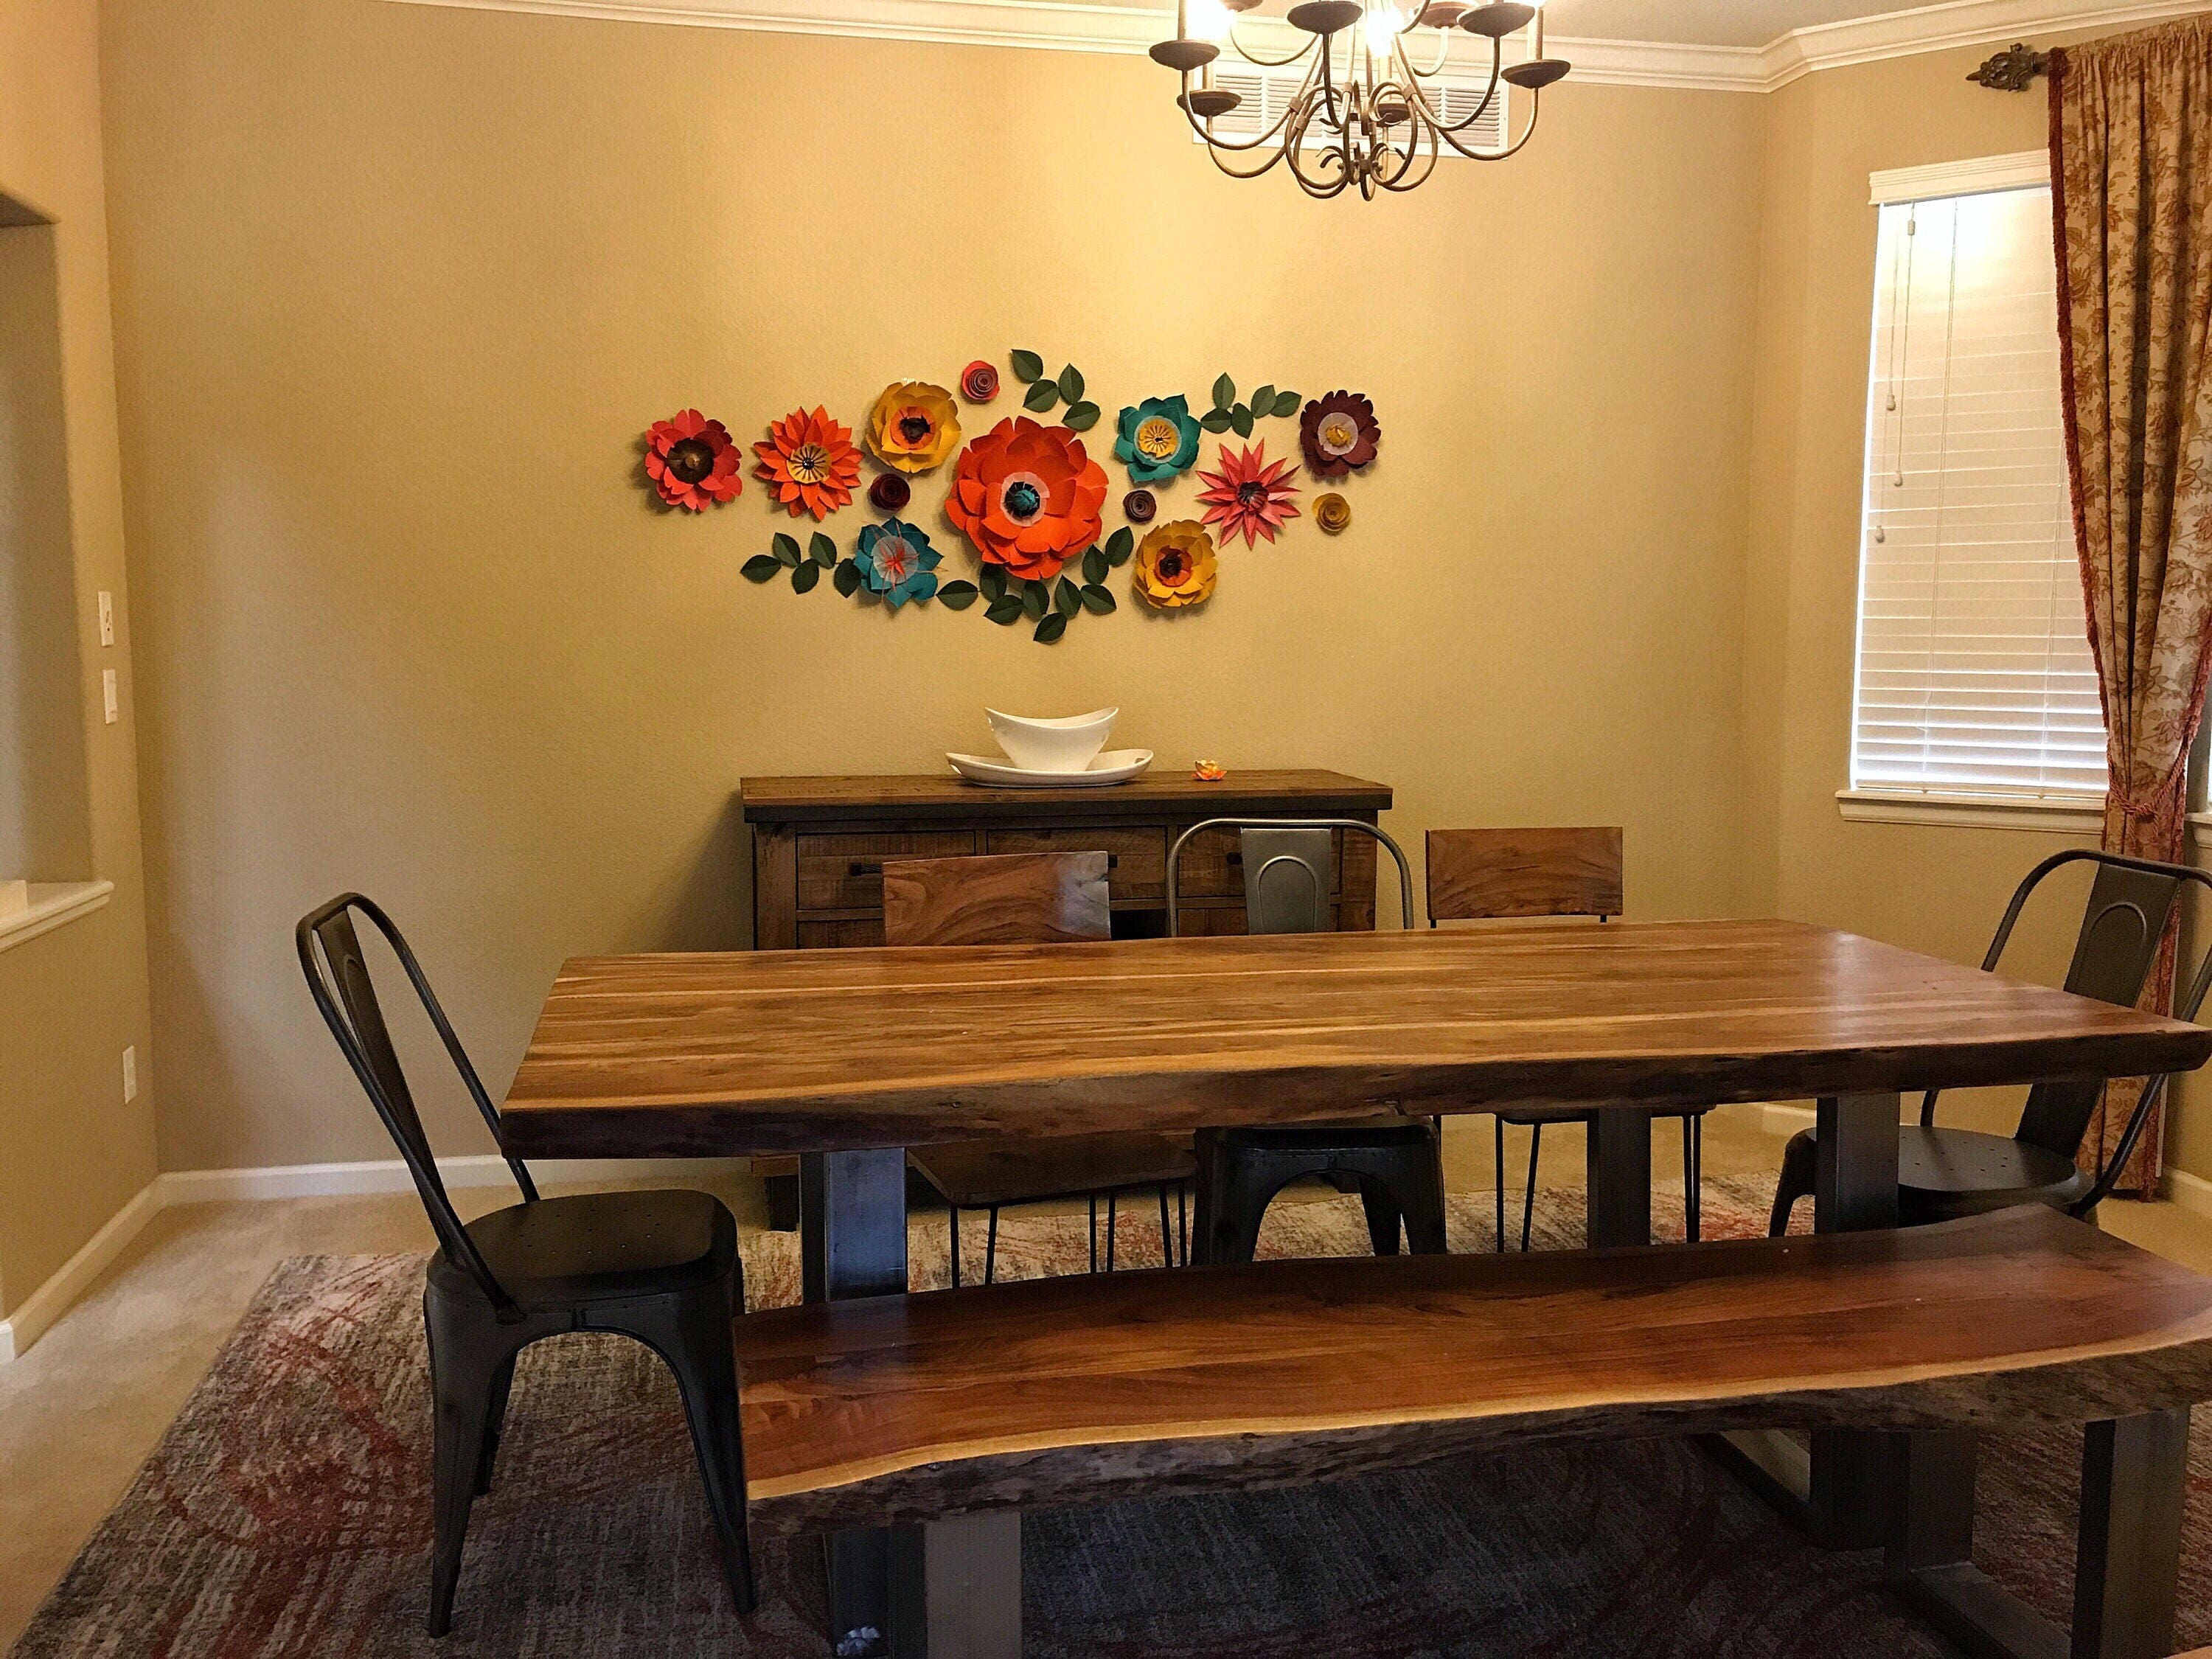 maple table vintage furniture cubical orange with bar stools wall wood plus chairs small chair varnished dining decorating decor painted brown room rectangle also and design luxury high beautiful ideas chandeliers color wooden